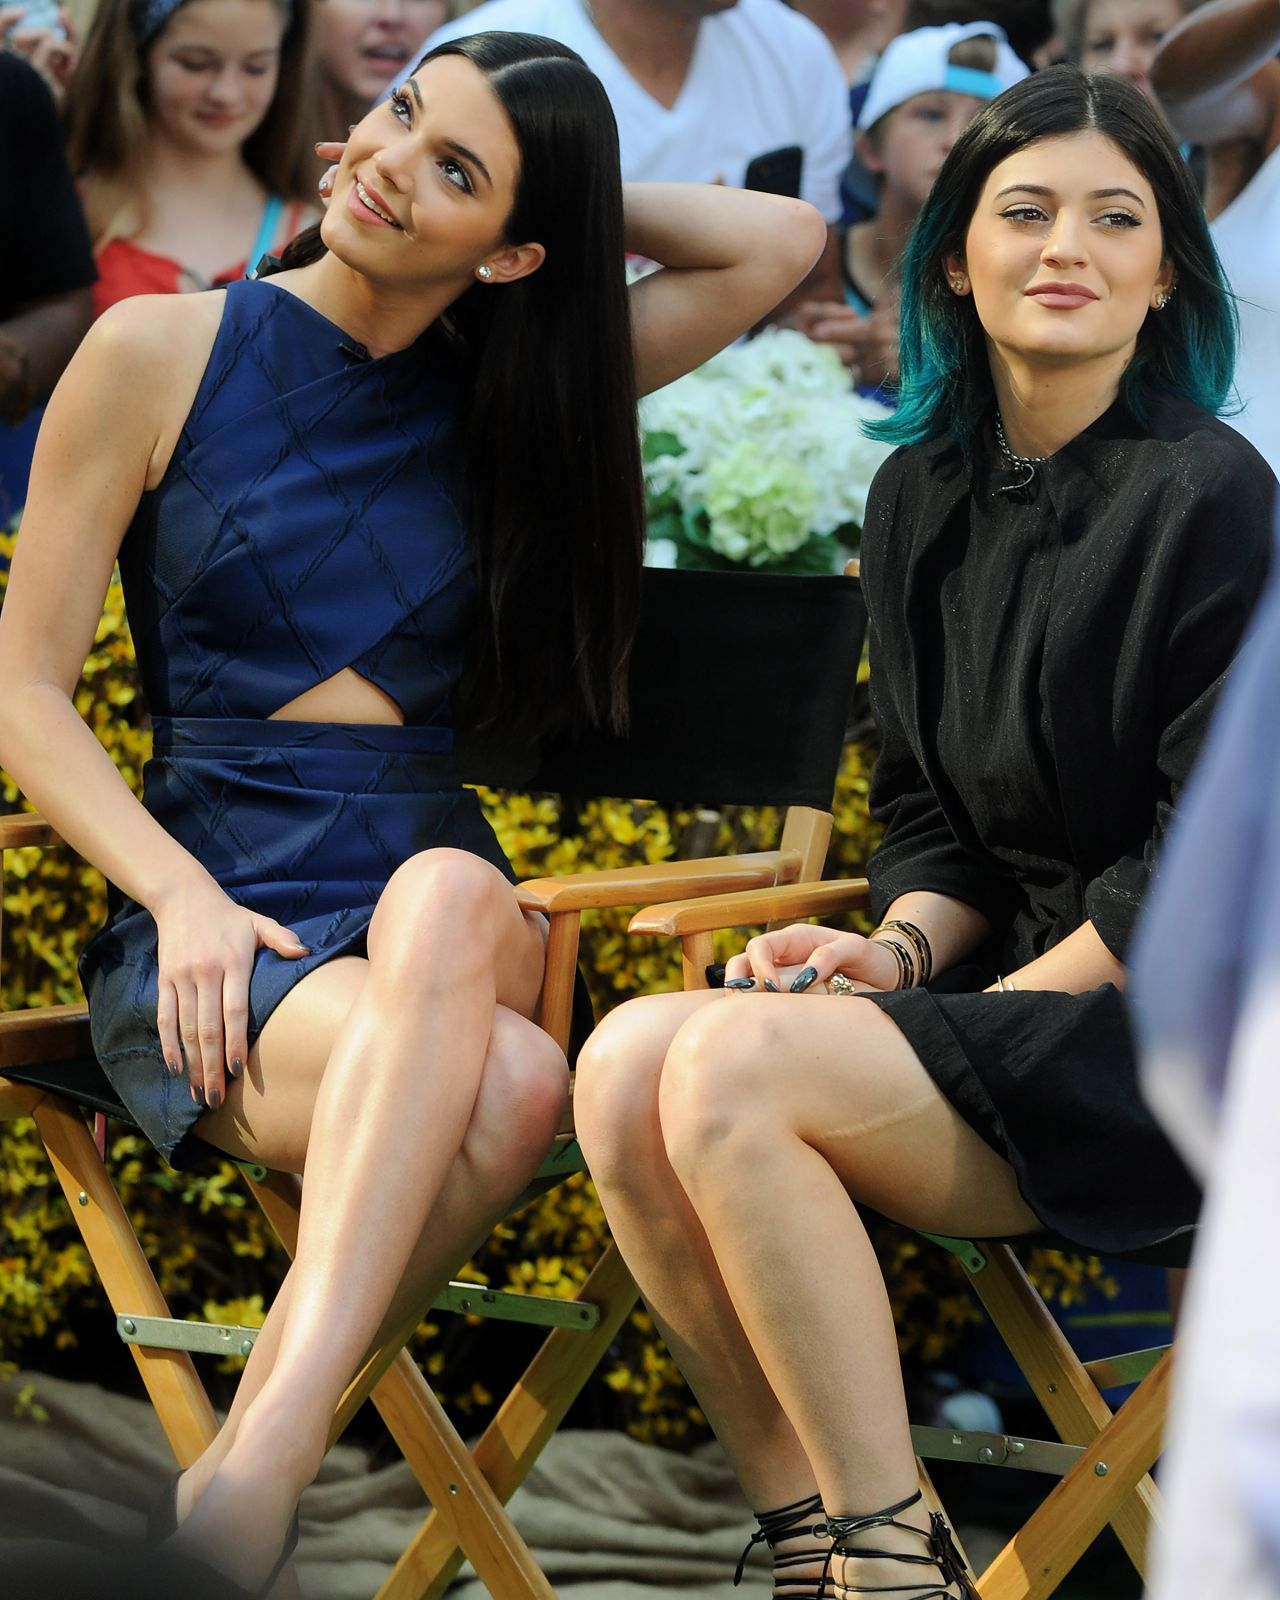 Kendall And Kylie Jenner Confessions: Kendall & Kylie Jenner At Good Morning America Studio In